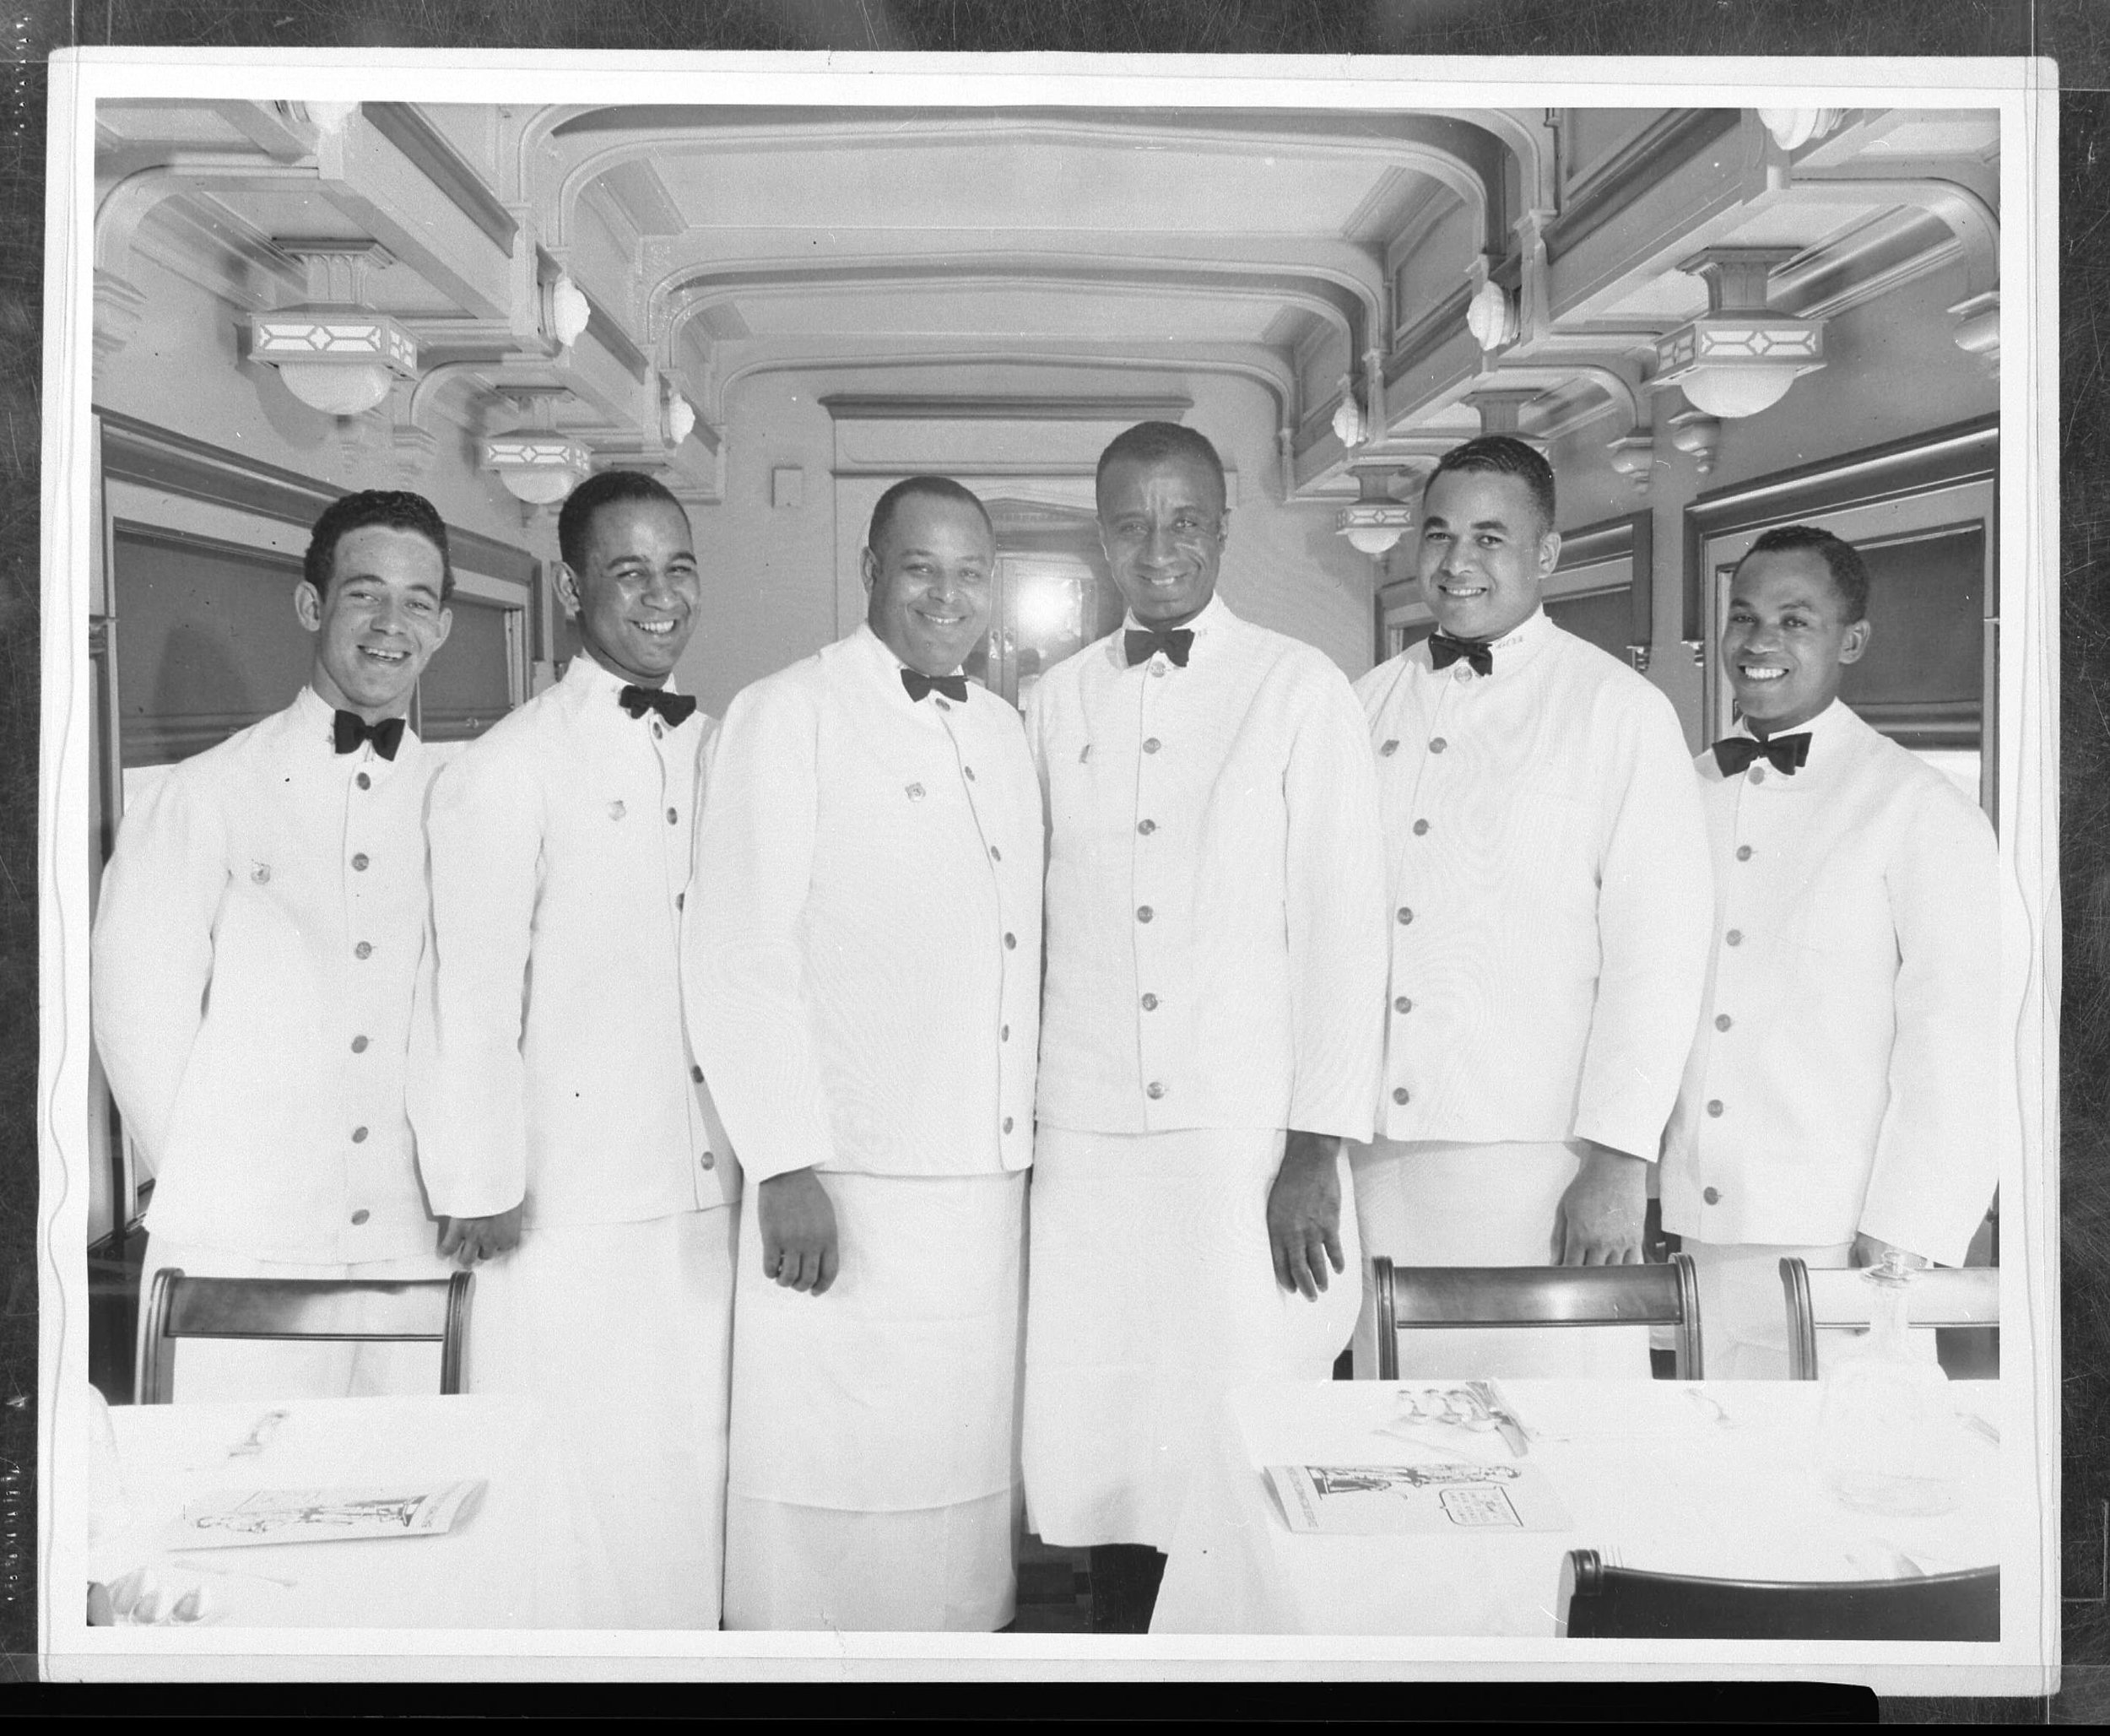 L to R: Joseph S. Hines, Adolphus Lewis, Jr., Wesley T. Parker, Louis E. Lowman, Alfred S. Cauthorne, Russell D. Wood. Photo used with permission. Courtesy of the  B&O Railroad Museum .